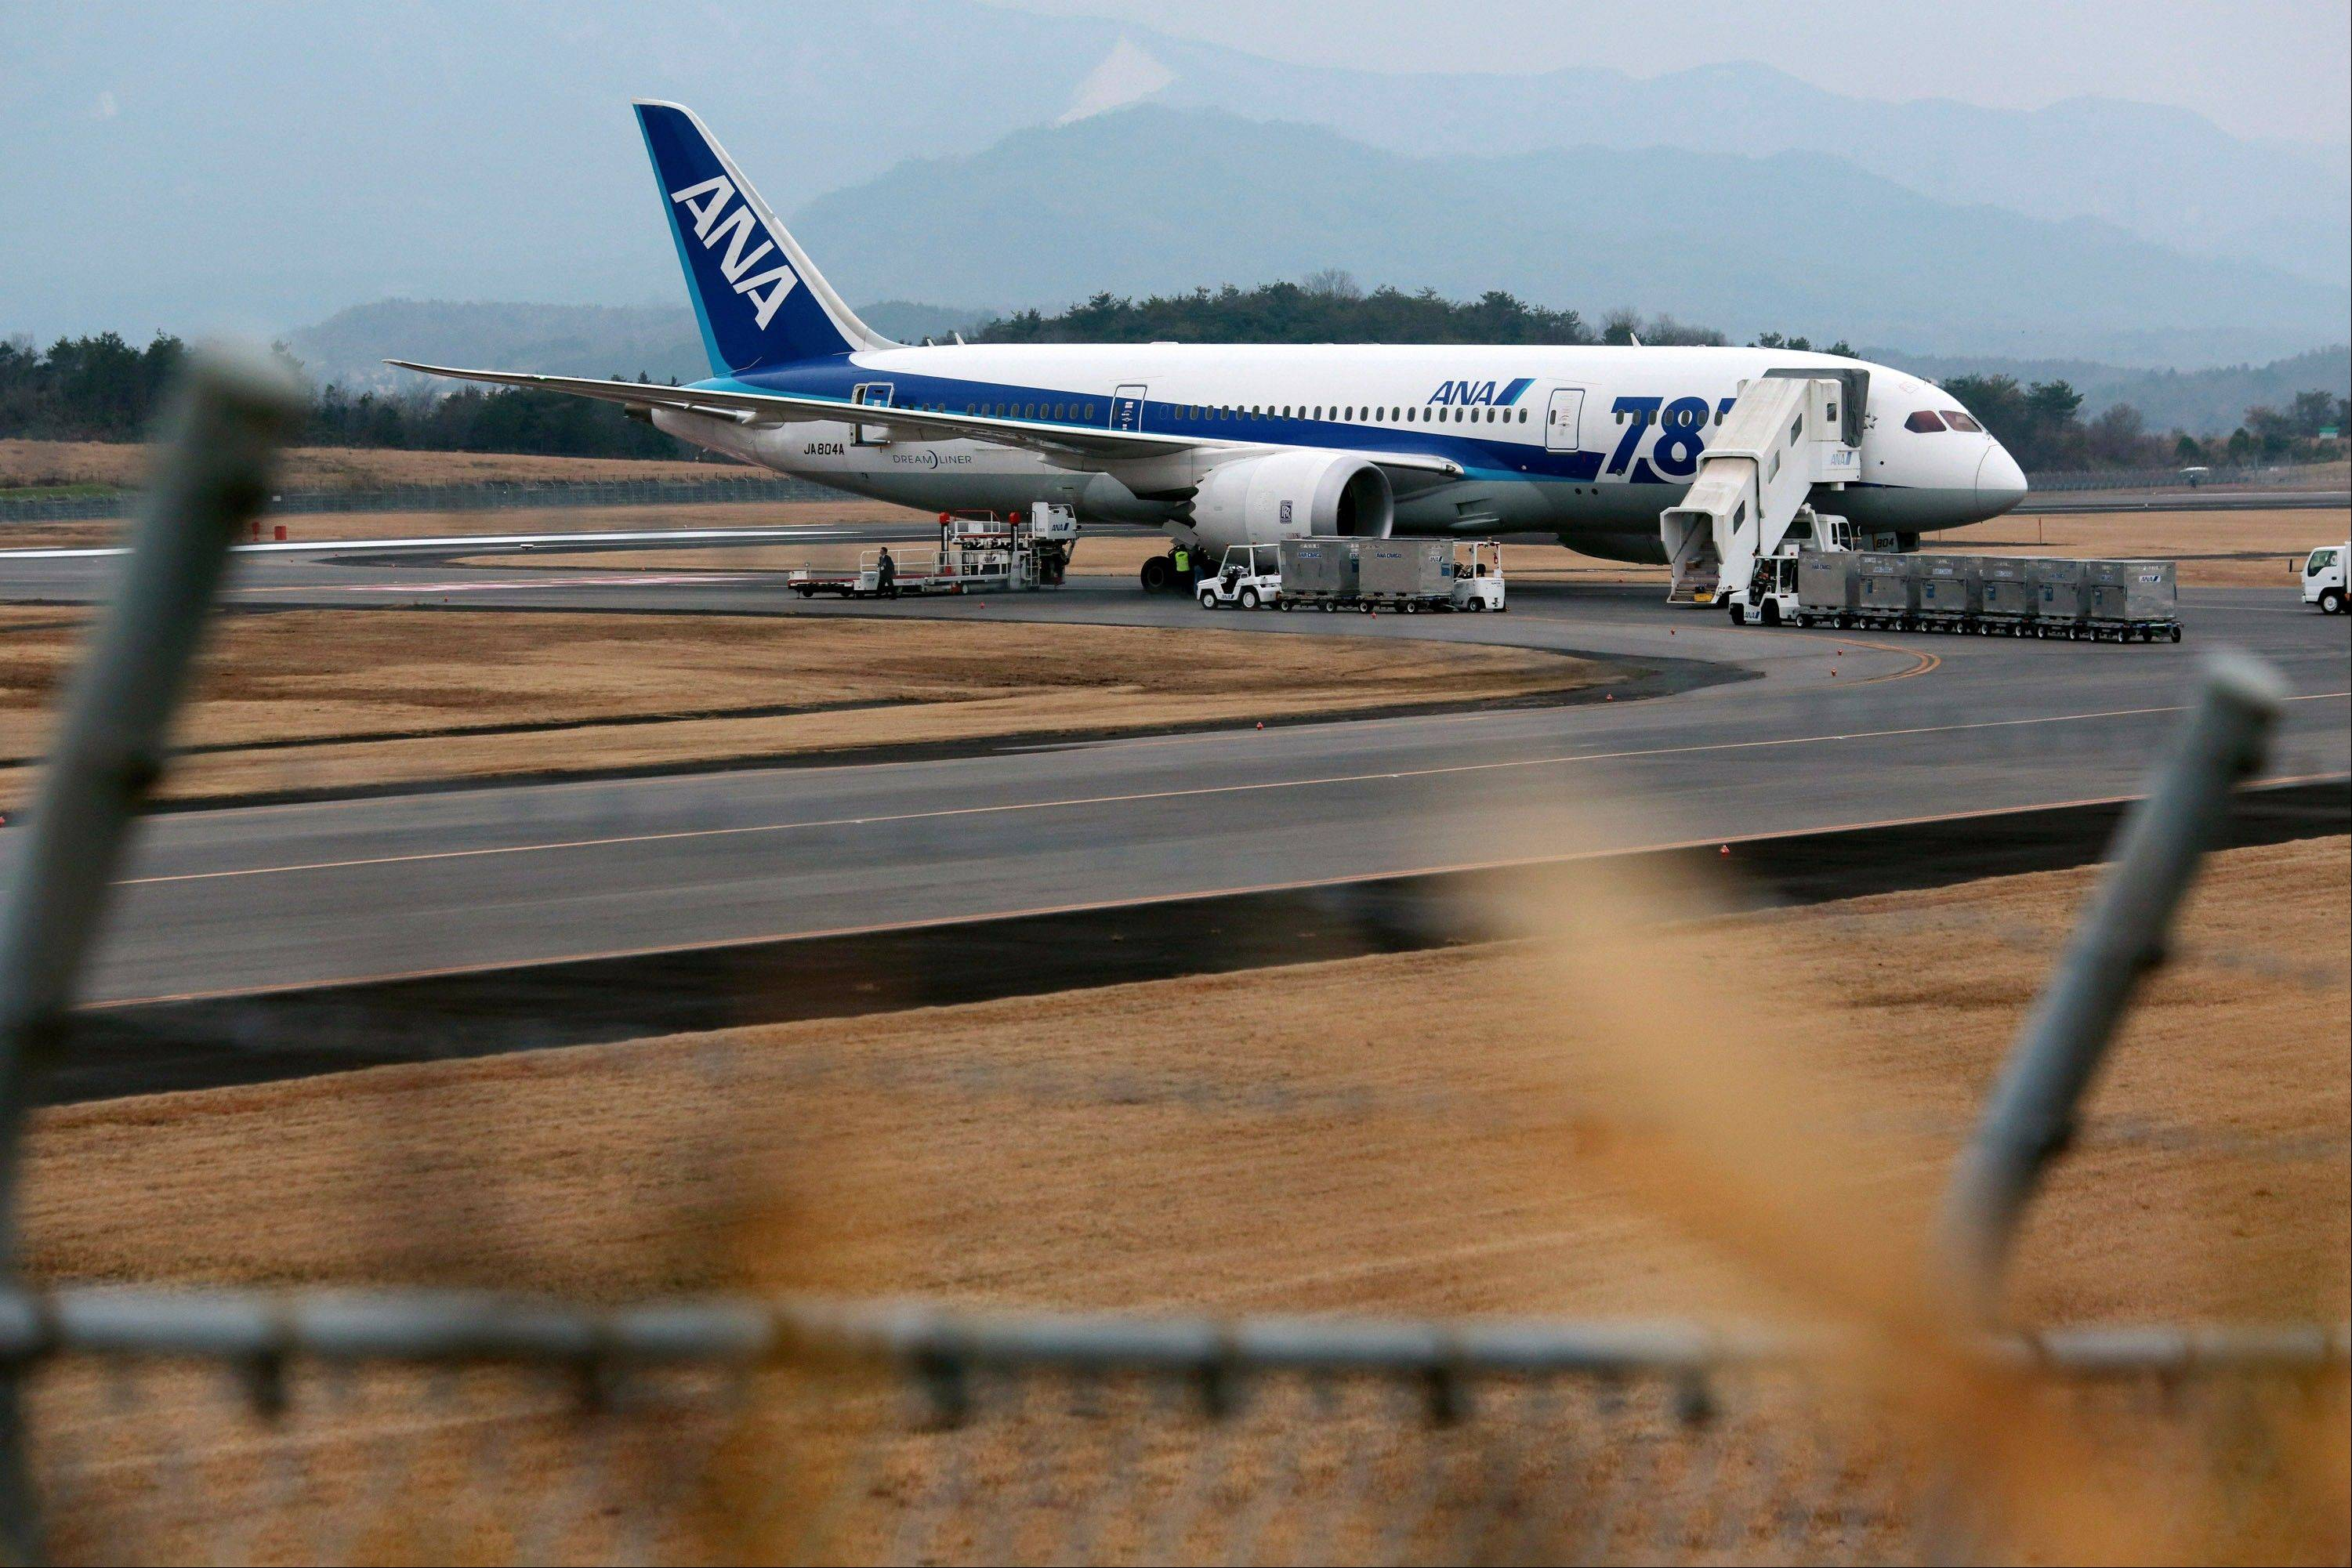 A Boeing 787 Dreamliner aircraft operated by All Nippon Airways Co., which made an emergency landing, stands on the tarmac Wednesday at Takamatsu airport in Takamatsu, Kagawa Prefecture, Japan.